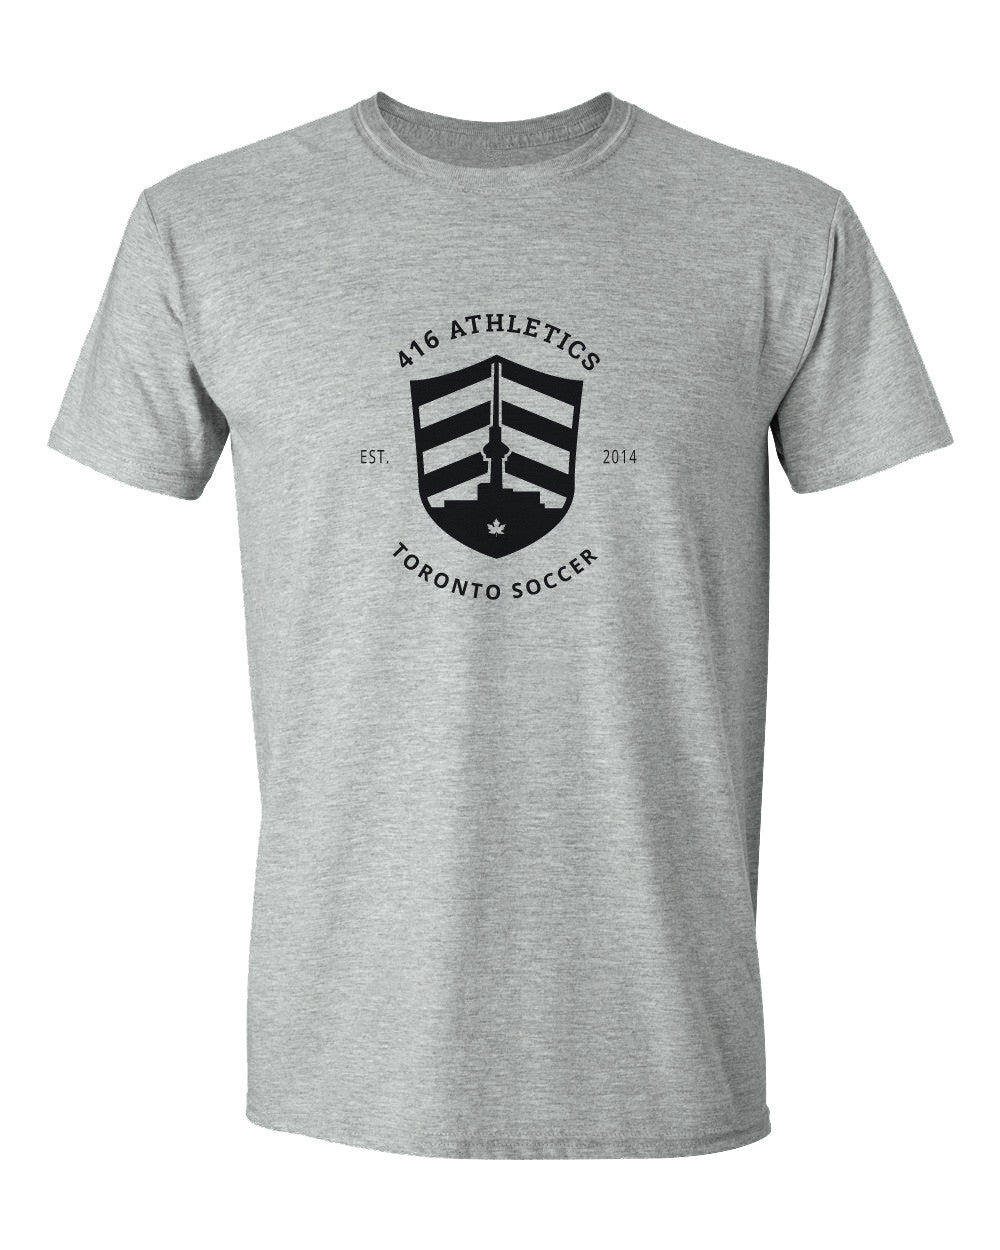 416 Athletics | Grey Tee